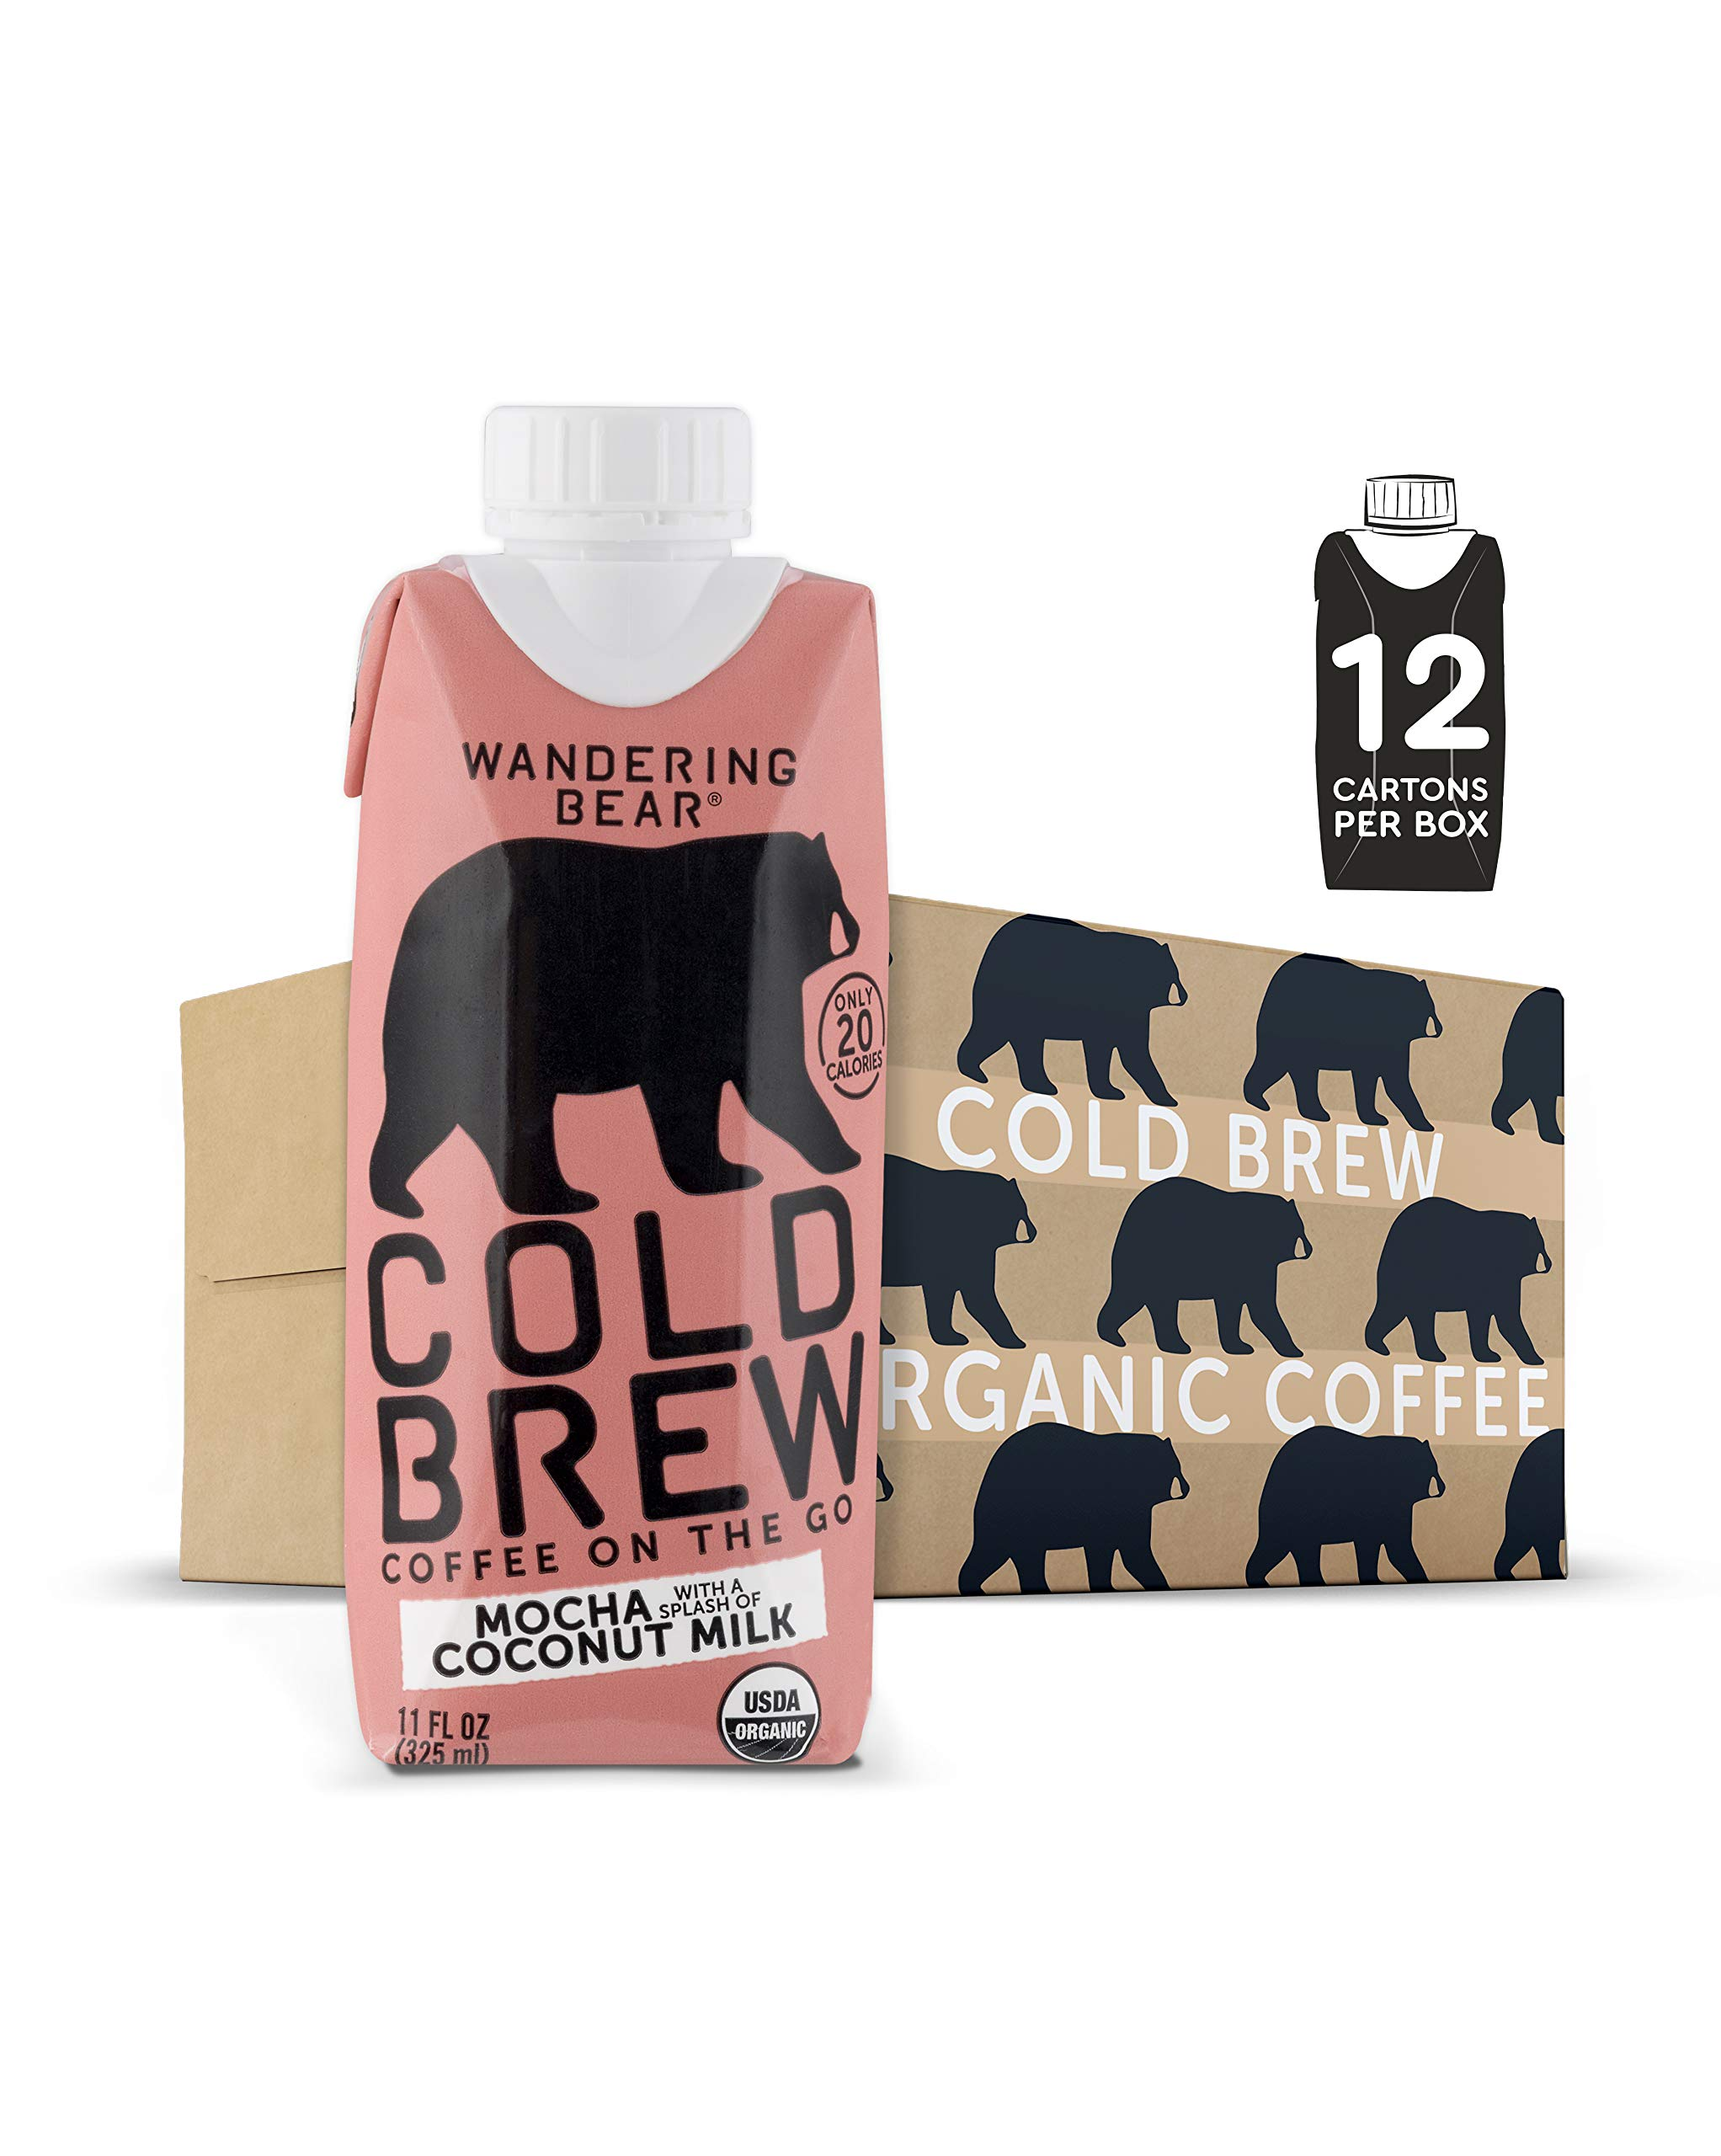 Wandering Bear Organic Cold Brew Coffee On-the-Go 11 oz Carton, Mocha With Splash of Coconut Milk, No Sugar, Ready to Drink, Not a Concentrate (Pack of 12)